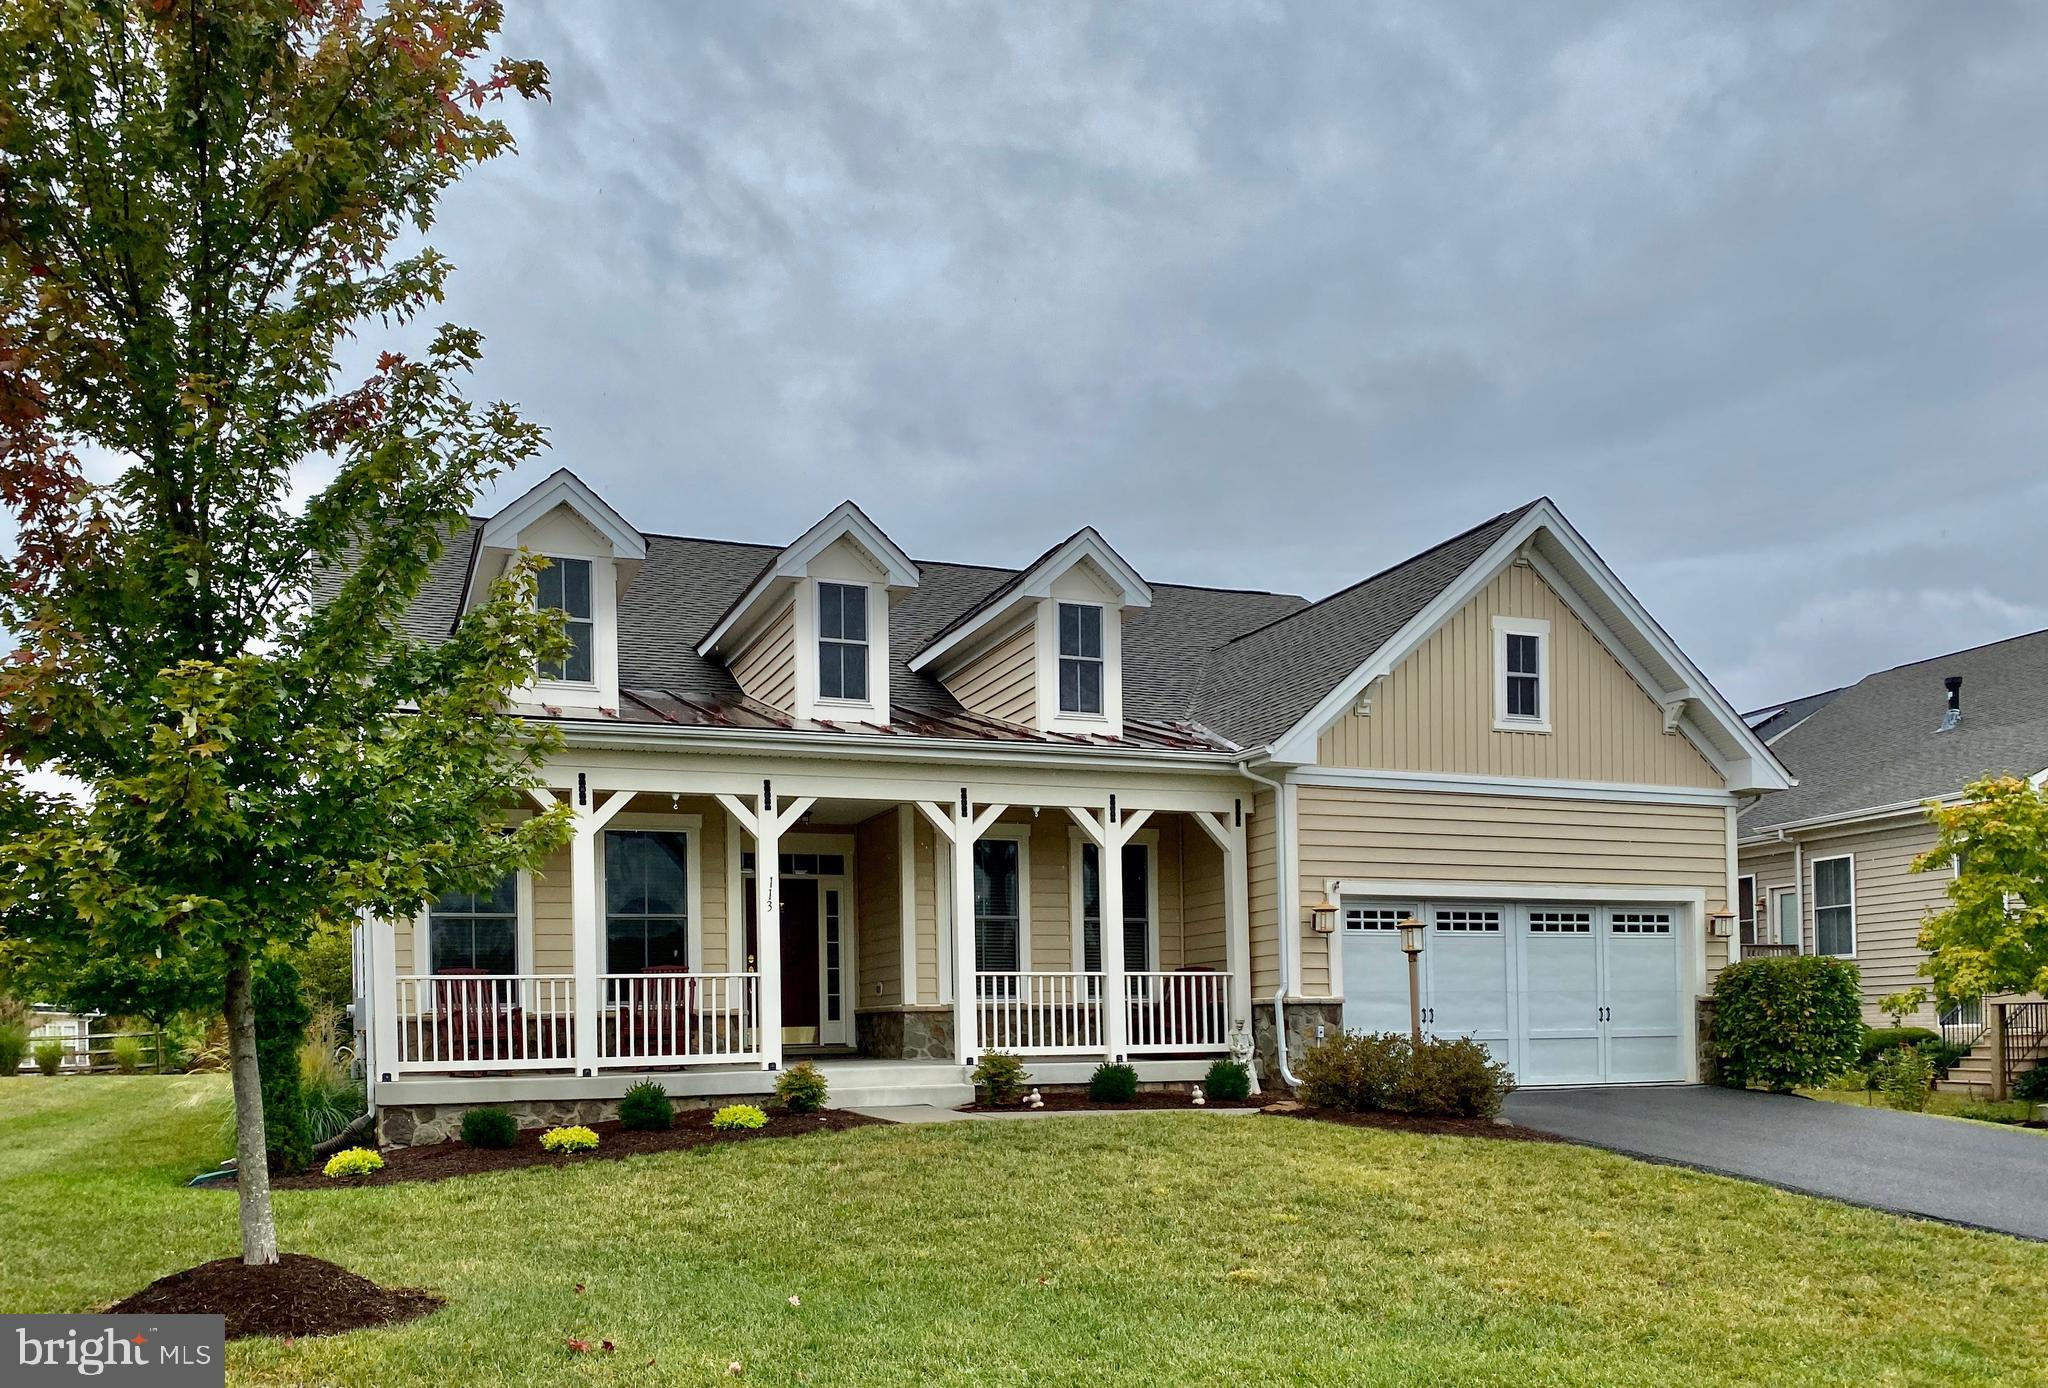 Beautiful craftsman home with lake access features an open floor plan with approximately 2,604 sq ft